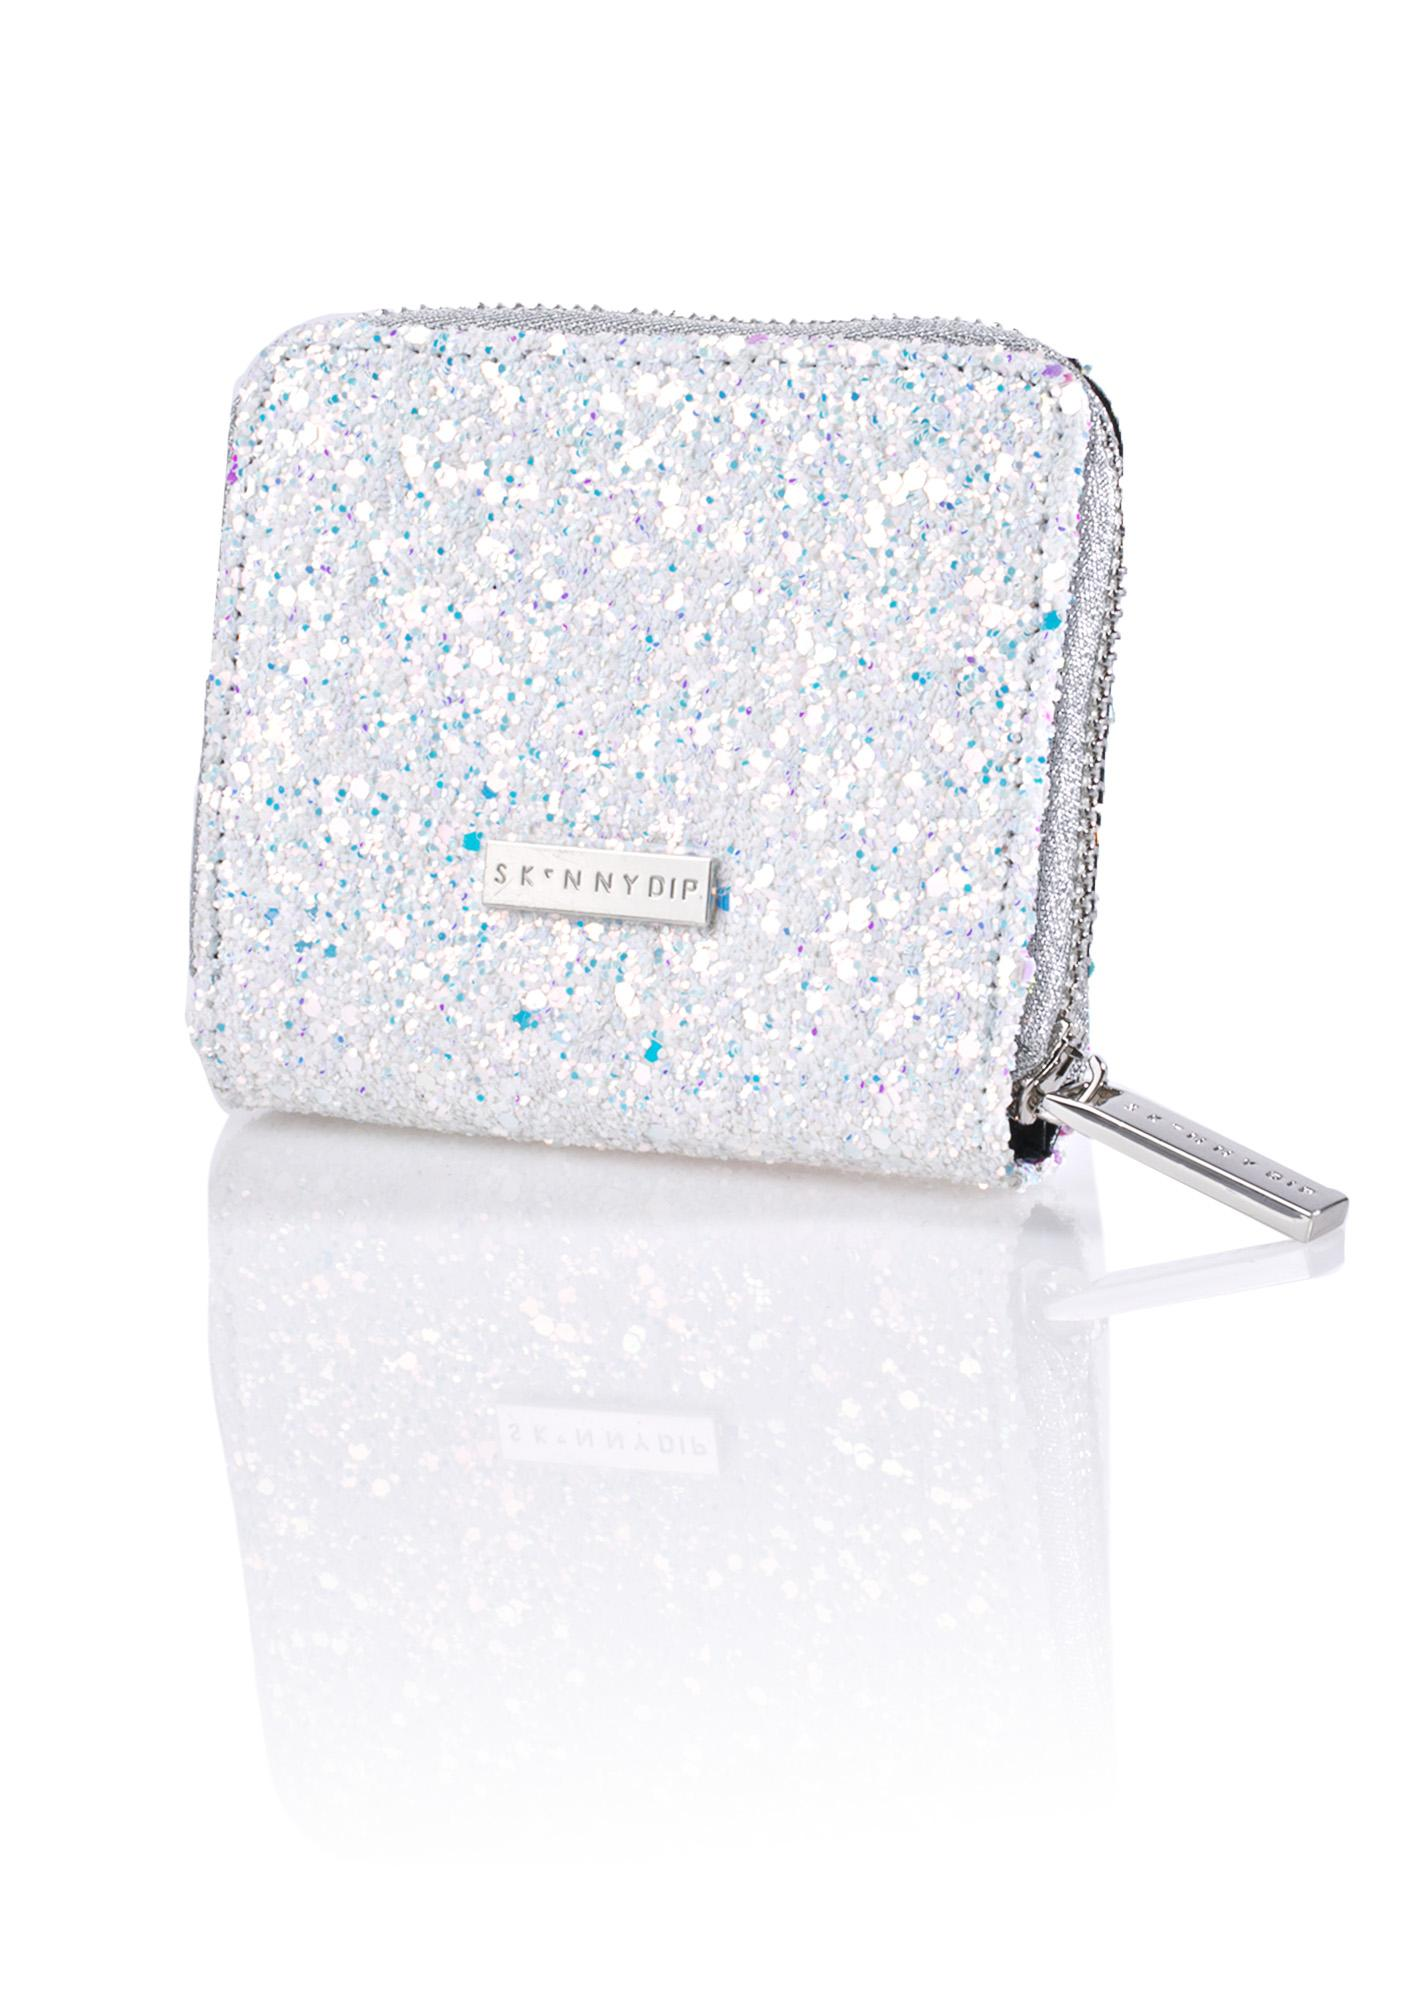 Skinnydip Frozen Mini Purse